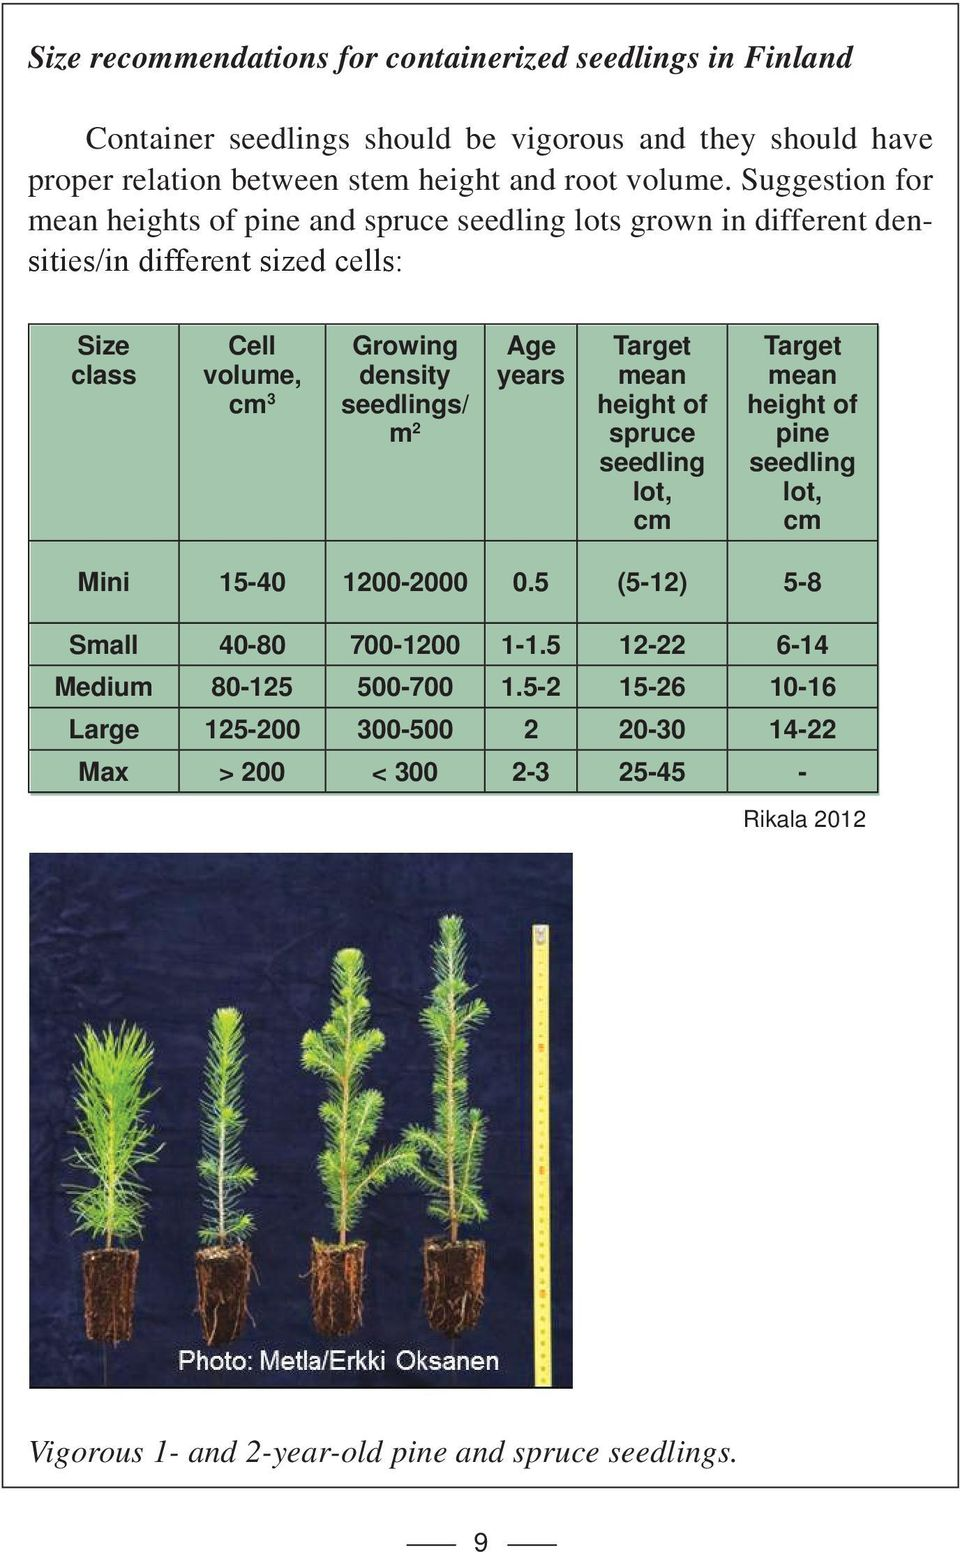 2 Age years Target mean height of spruce seedling lot, cm Target mean height of pine seedling lot, cm Mini 15-40 1200-2000 0.5 (5-12) 5-8 Small 40-80 700-1200 1-1.